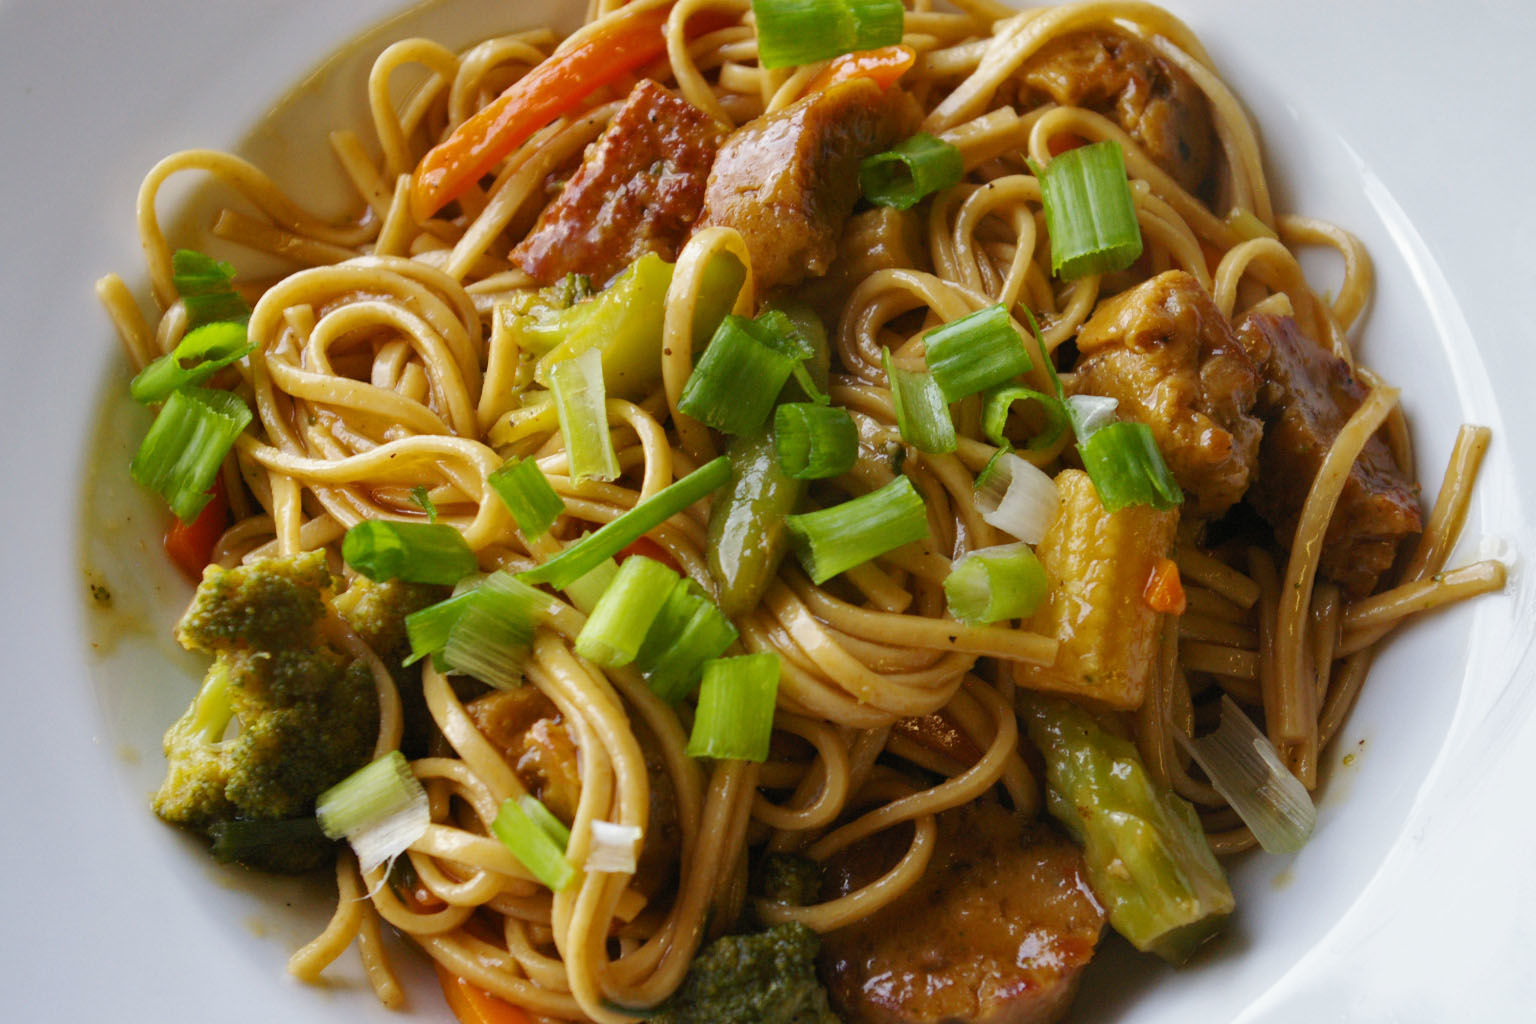 Tender pieces of chicken, shiitake mushrooms, green onions, and noodles are tossed in a homemade ginger, garlic, and soy lo mein sauce. Leftovers taste great served cold as a noodle salad the next day. Linguine pasta works well but try using Chinese noodles for a more authentic dish.